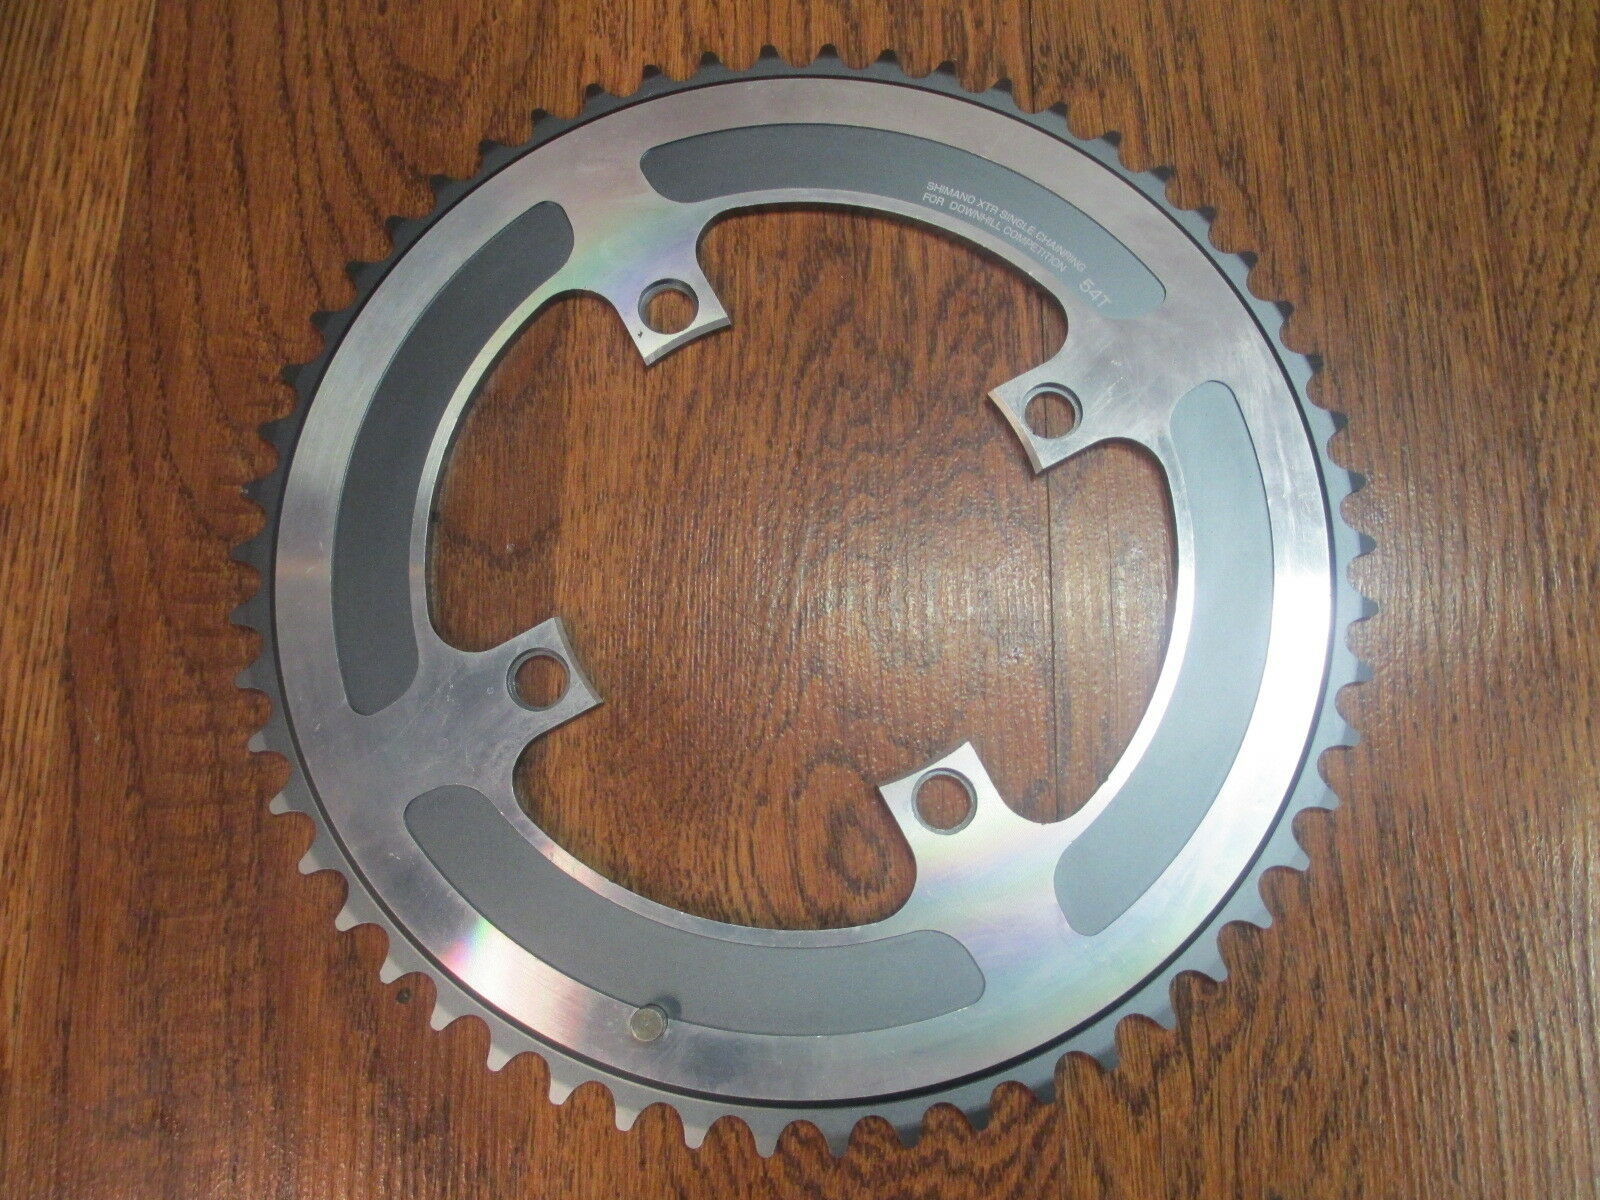 RARE SHIMANO XTR SINGLE CHAINRING FOR DOWHILL  COMPETITION  4 BOLT 110 BCD 54T  in stadium promotions